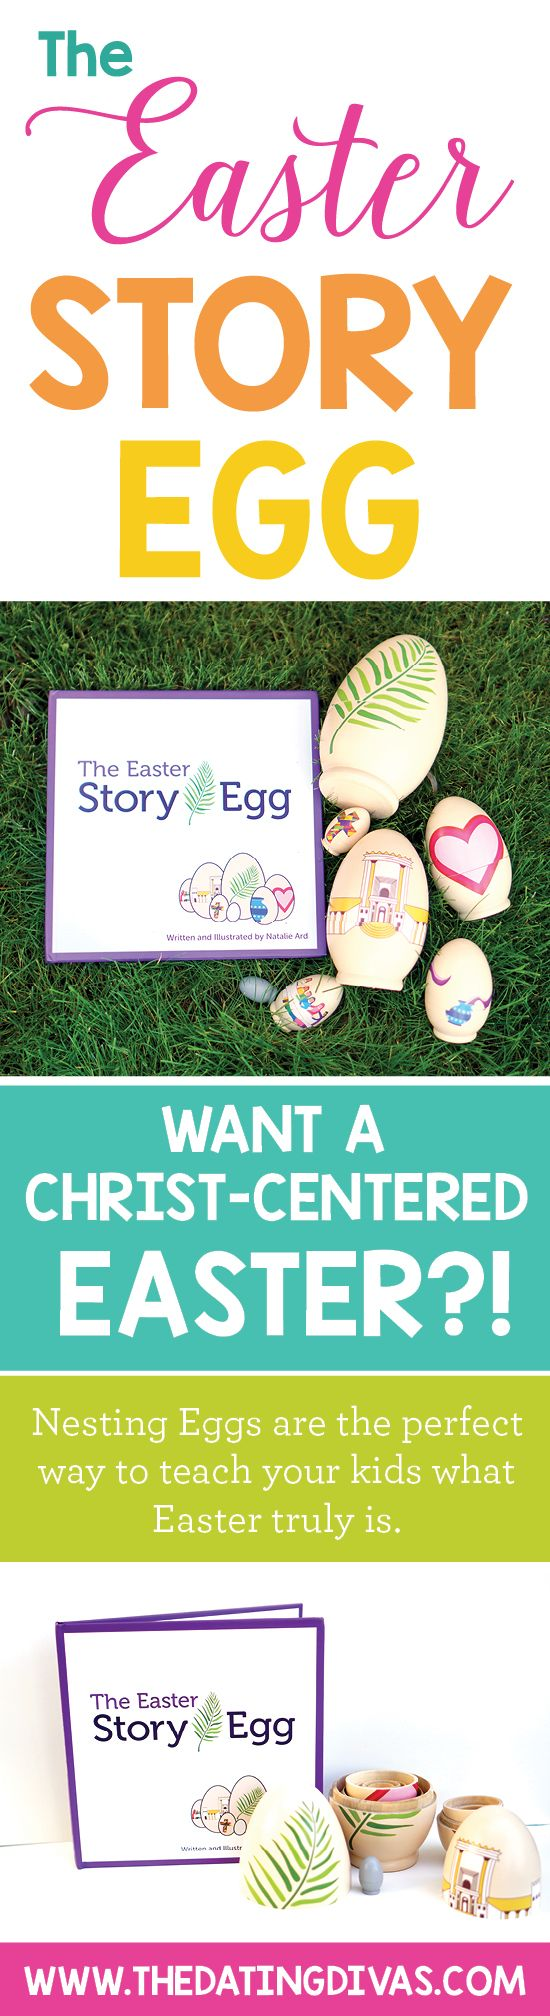 When most people think eggs and Easter, Cadberry eggs or an afternoon spent dipping and dyeing probably come to mind. No one thinks Christ when you mention Easter eggs. Our Easter Egg Story and nesting eggs aim to change all that! They're the perfect way to remind you and your family of the real reason for the season! And for a limited time you can USE CODE 'DIVAS10' for 10% off!